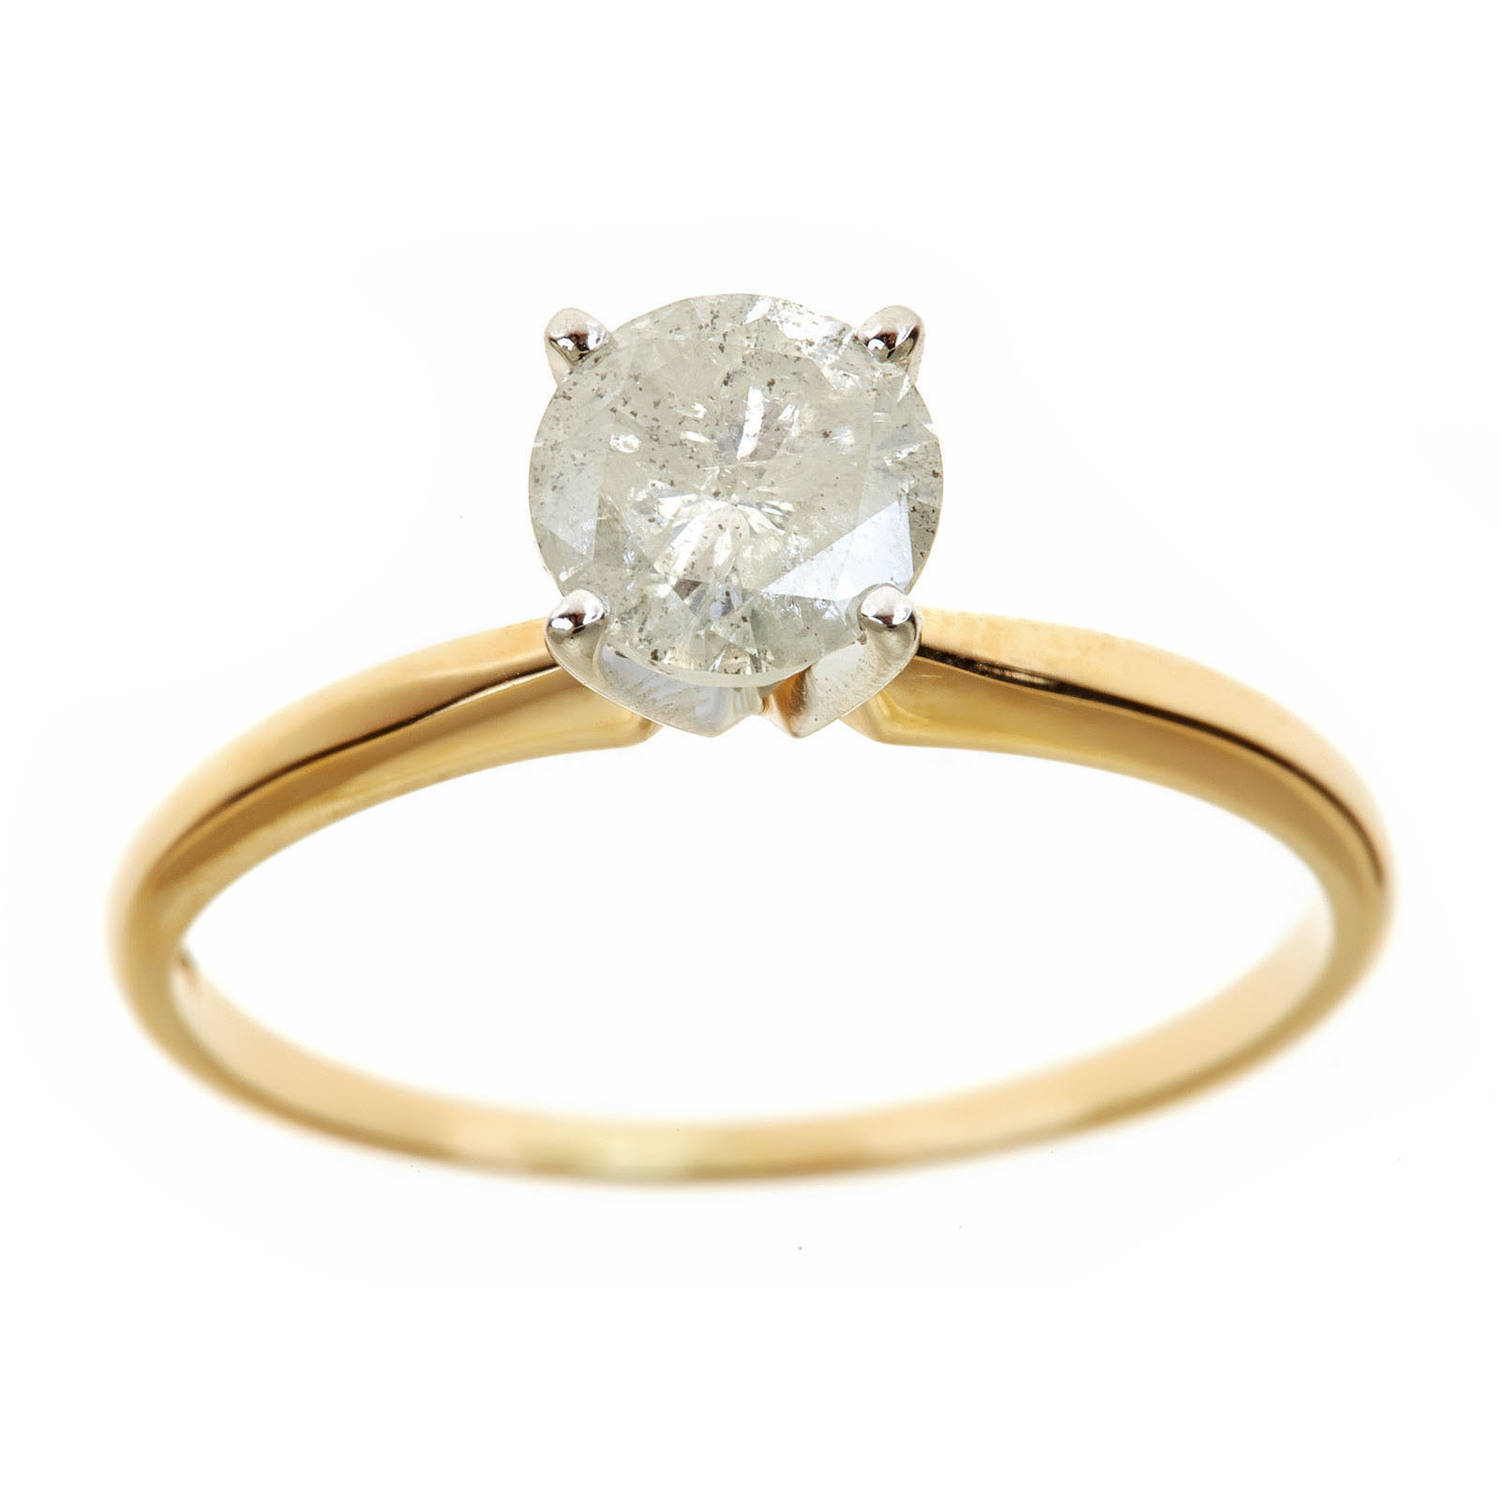 1.25 Carat T.W. Round White Diamond 14kt Yellow Gold Solitaire Ring, IGL certified